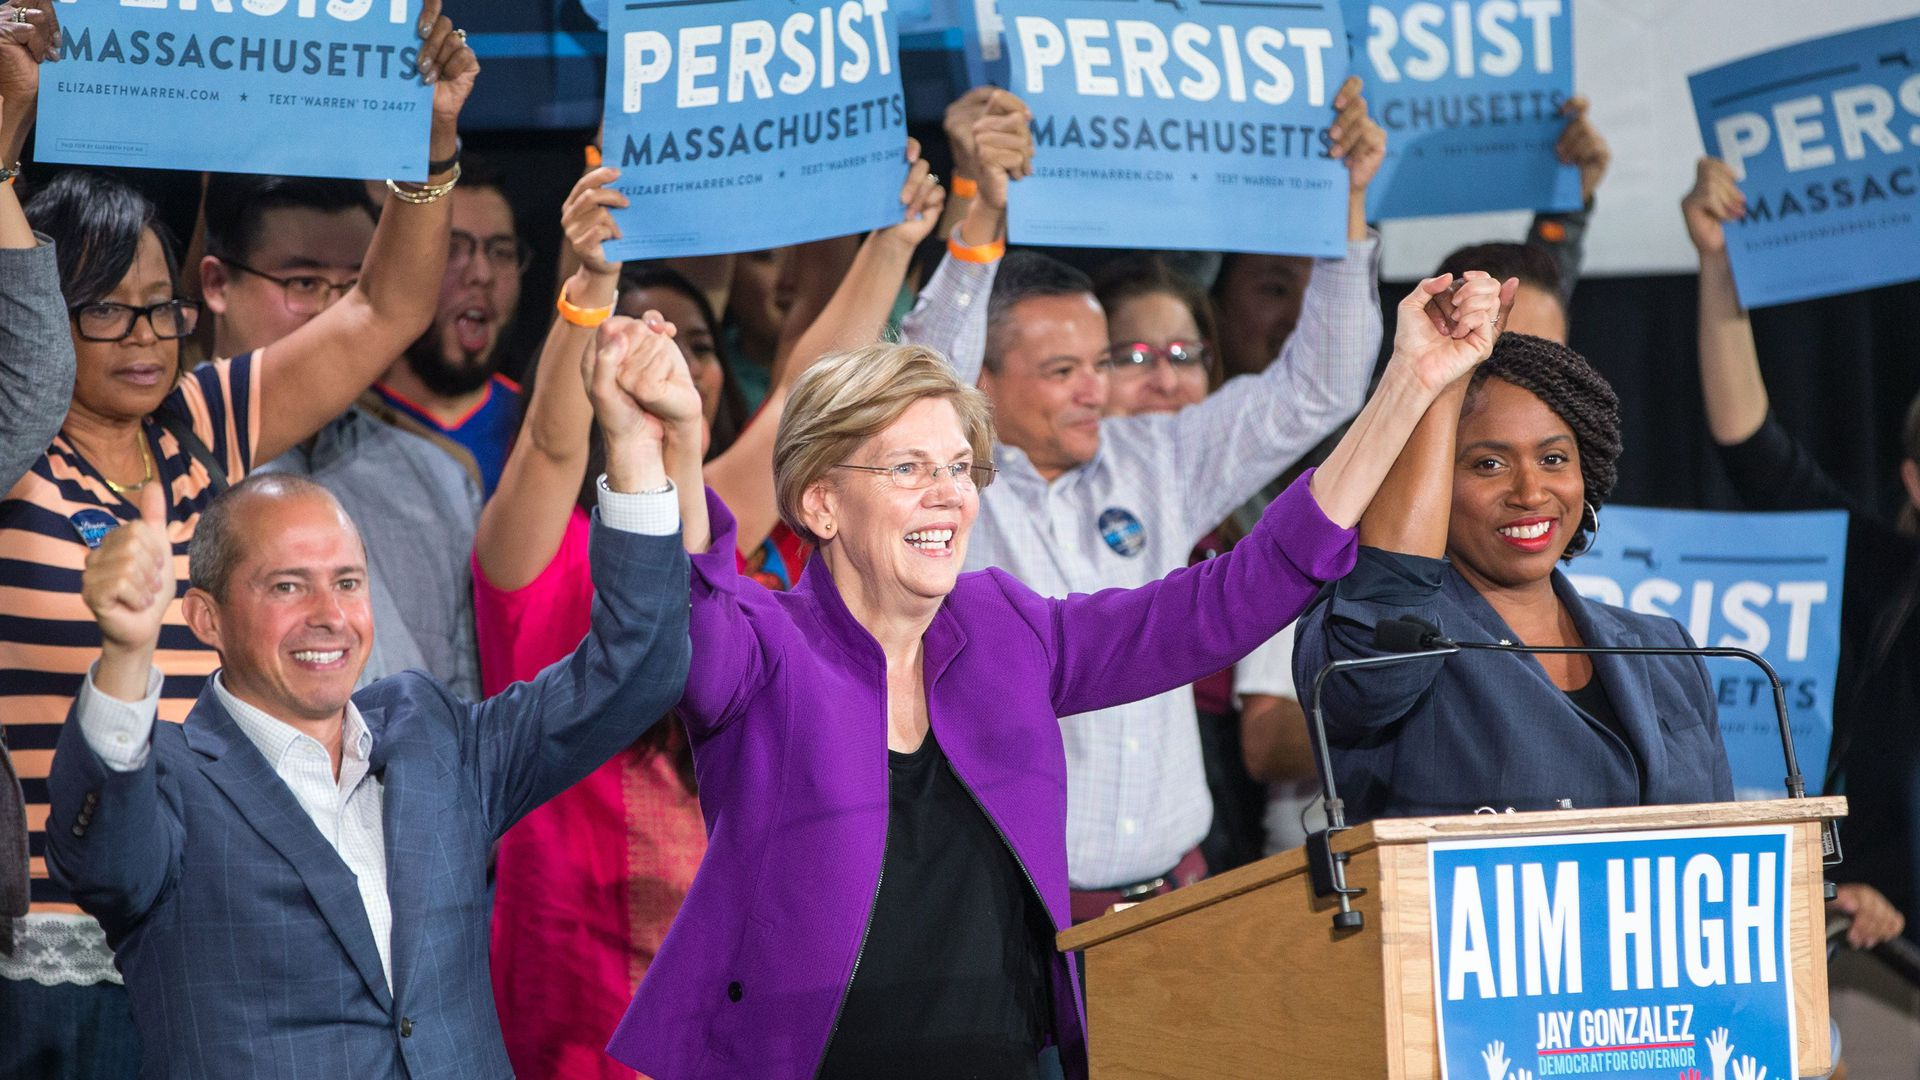 Liz Warren at a campaign rally